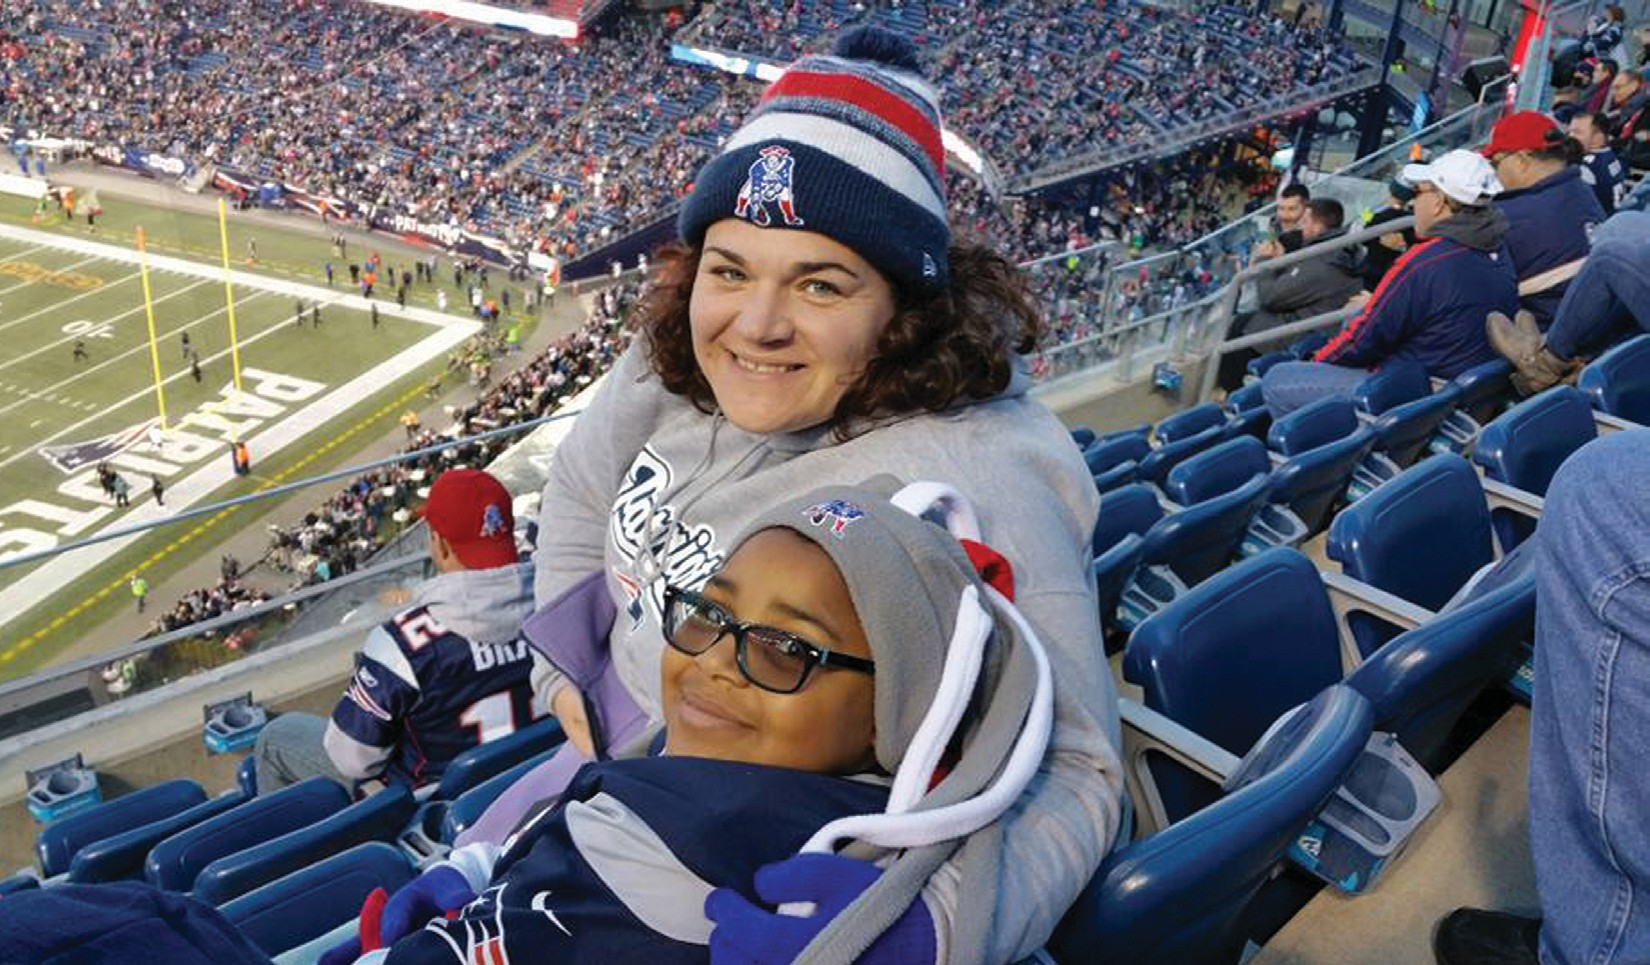 SUBMITTED PHOTOKaren Jean-Paul and her daughter Genevieve sit at the stands of Gillette Stadium in Foxborough, Mass. on Sunday.